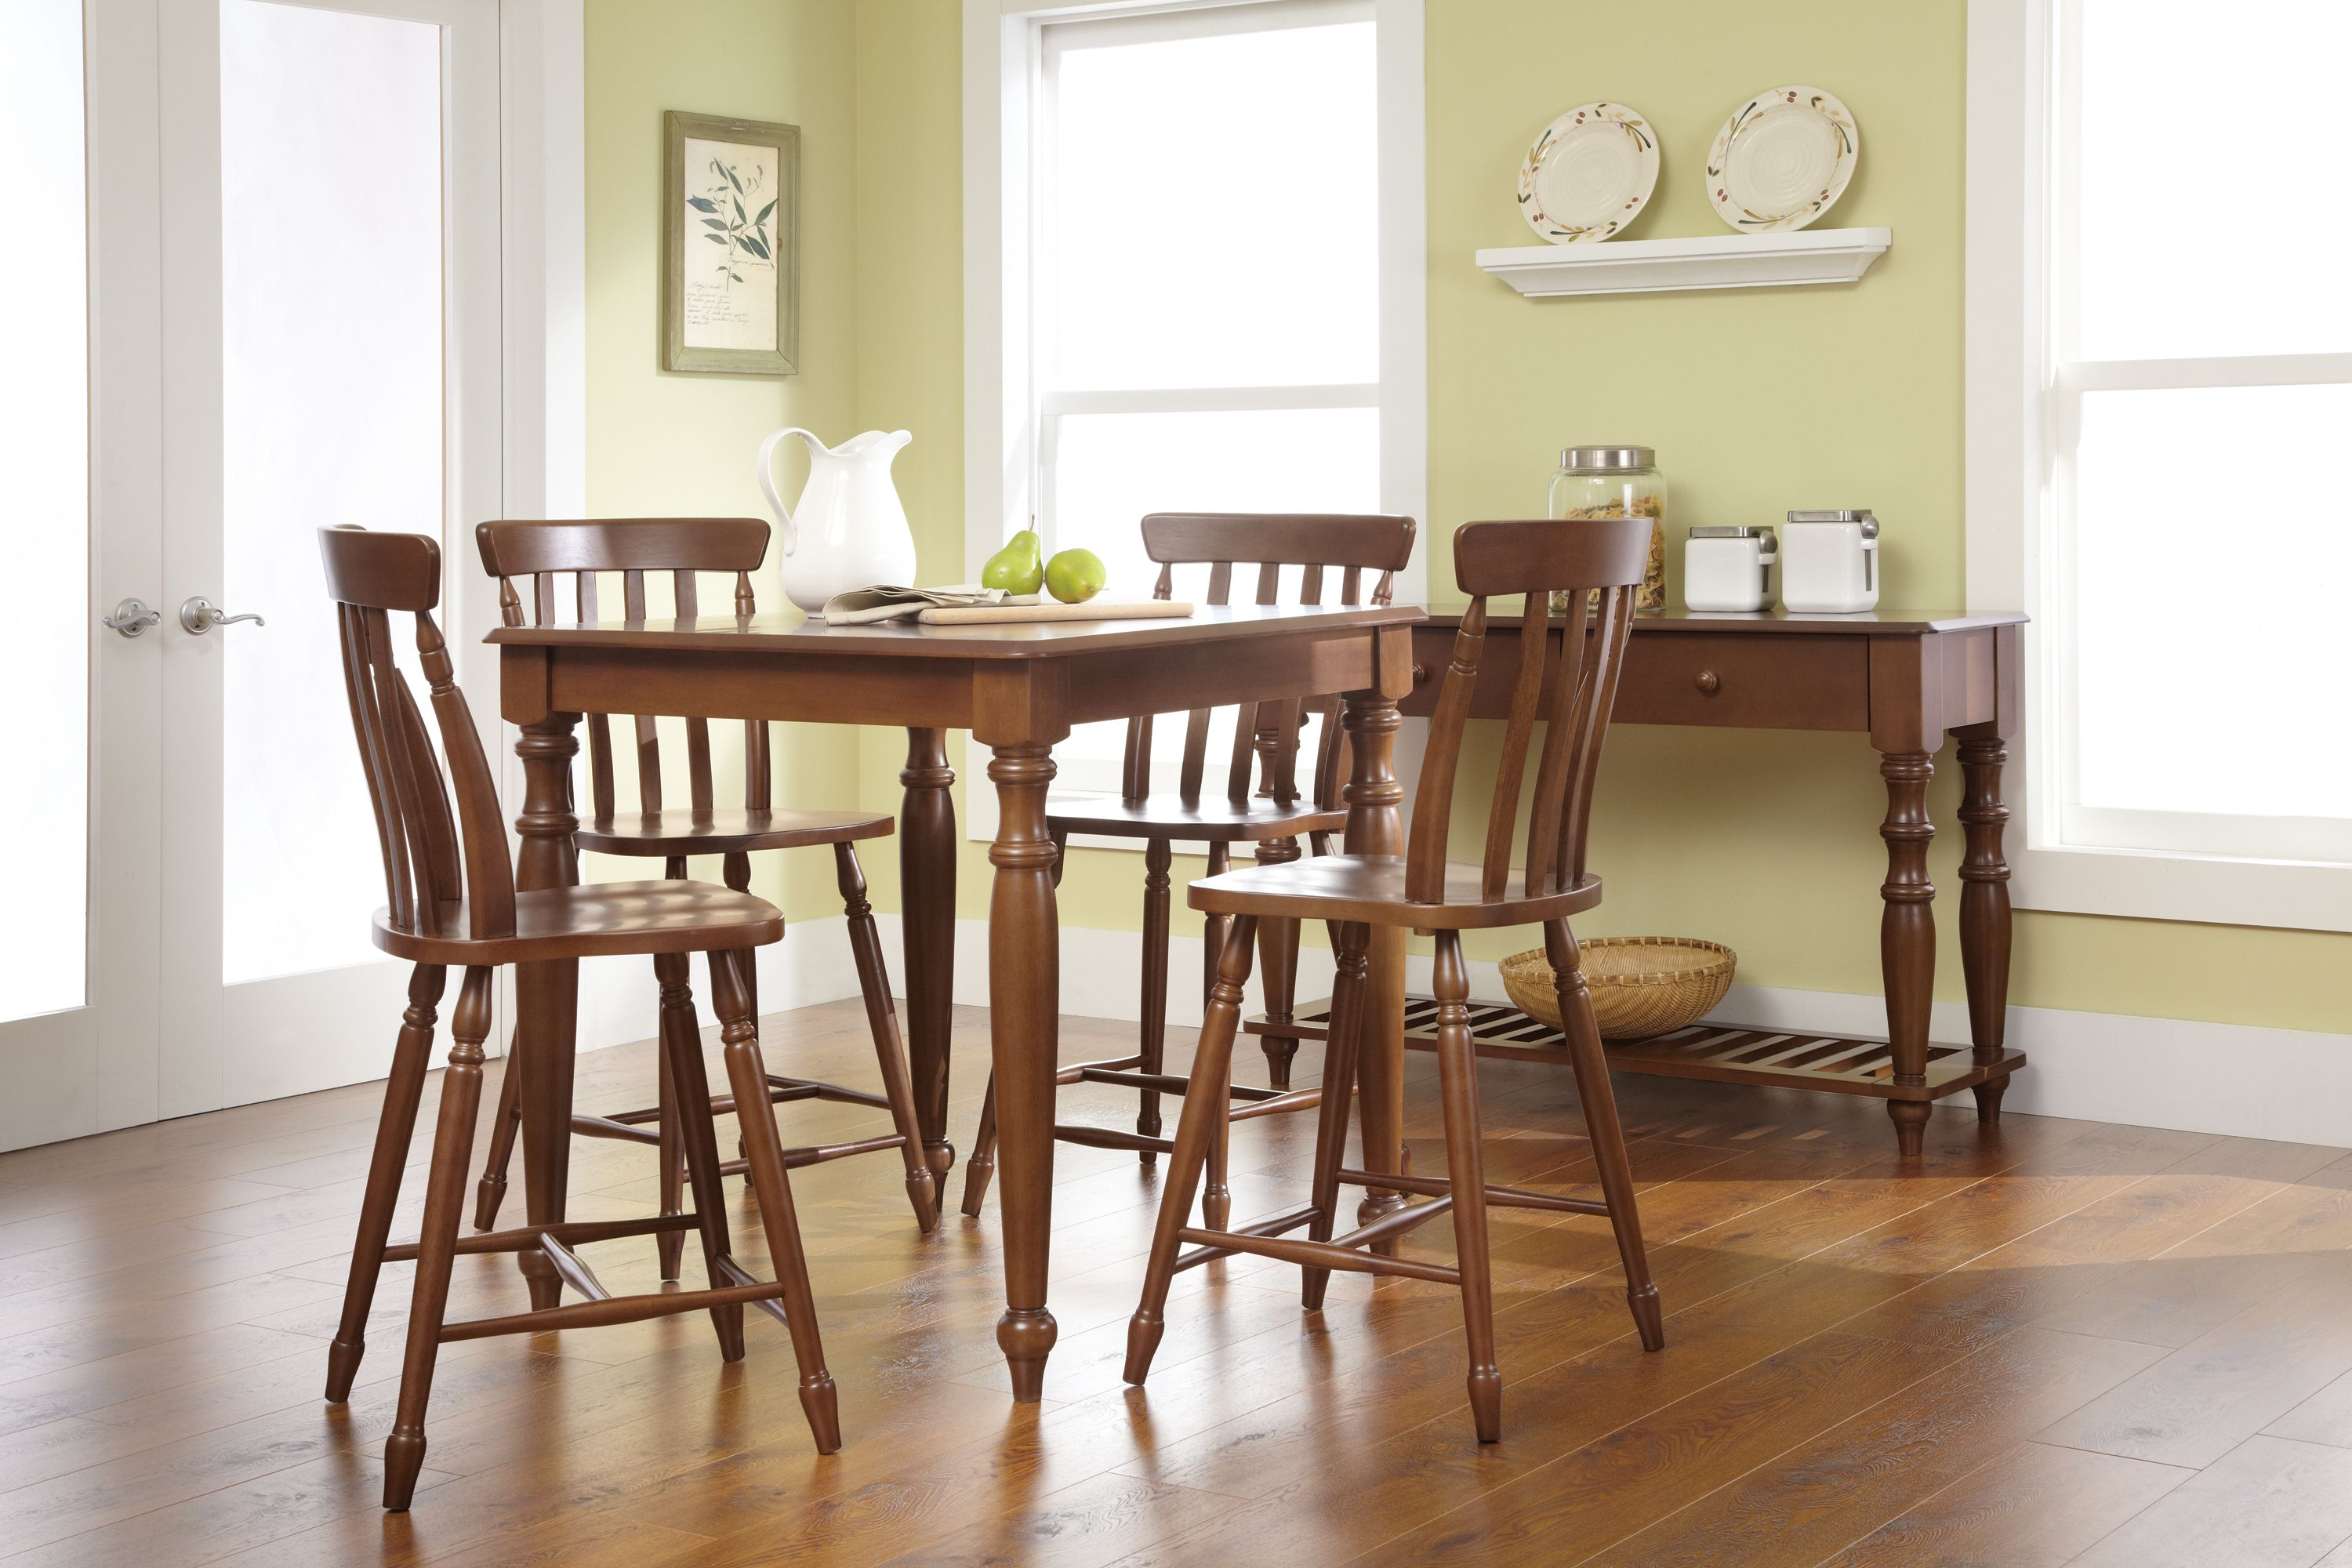 The Bridgeport Collection By John Thomas Furniture Available Through Wood Crafted Furniture Anchorage Alaska